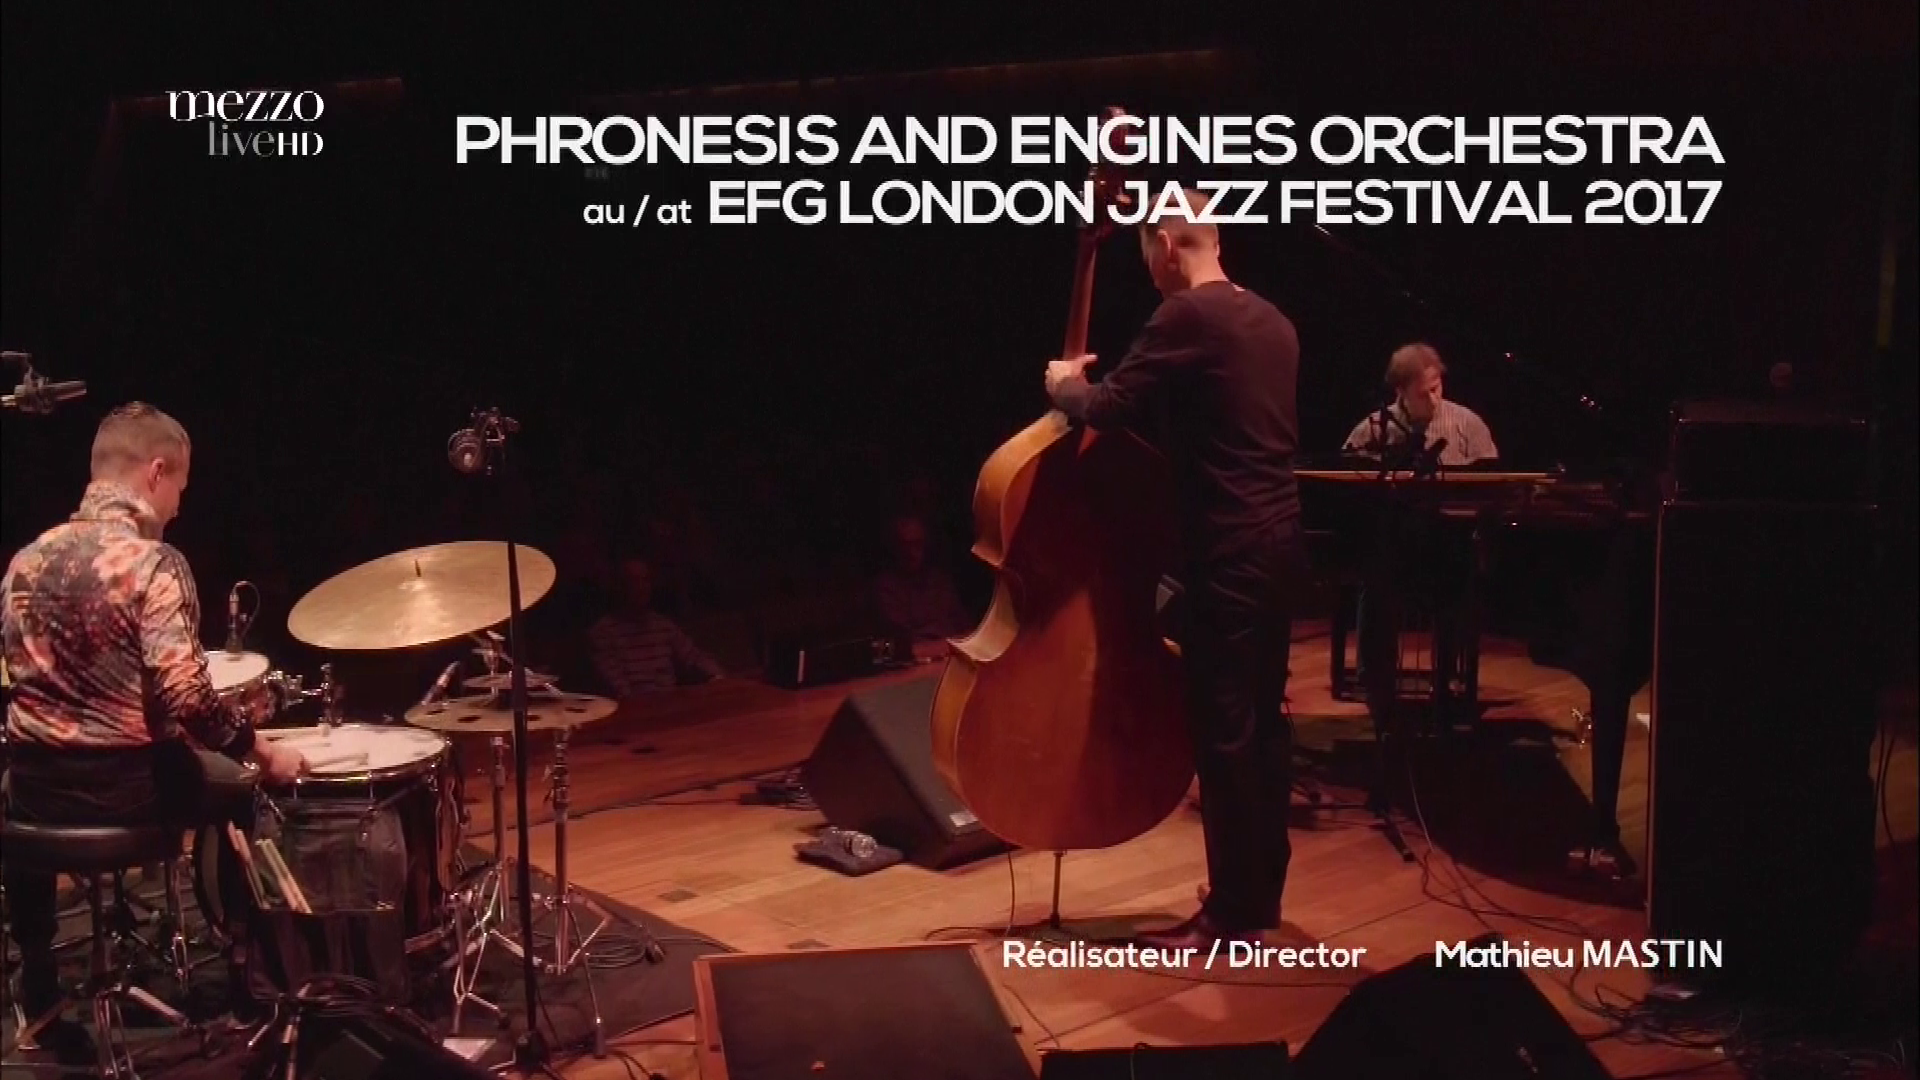 2017 Phronesis & Engines Orchestra - At EFG London Jazz Fest [HDTV 1080i] 0